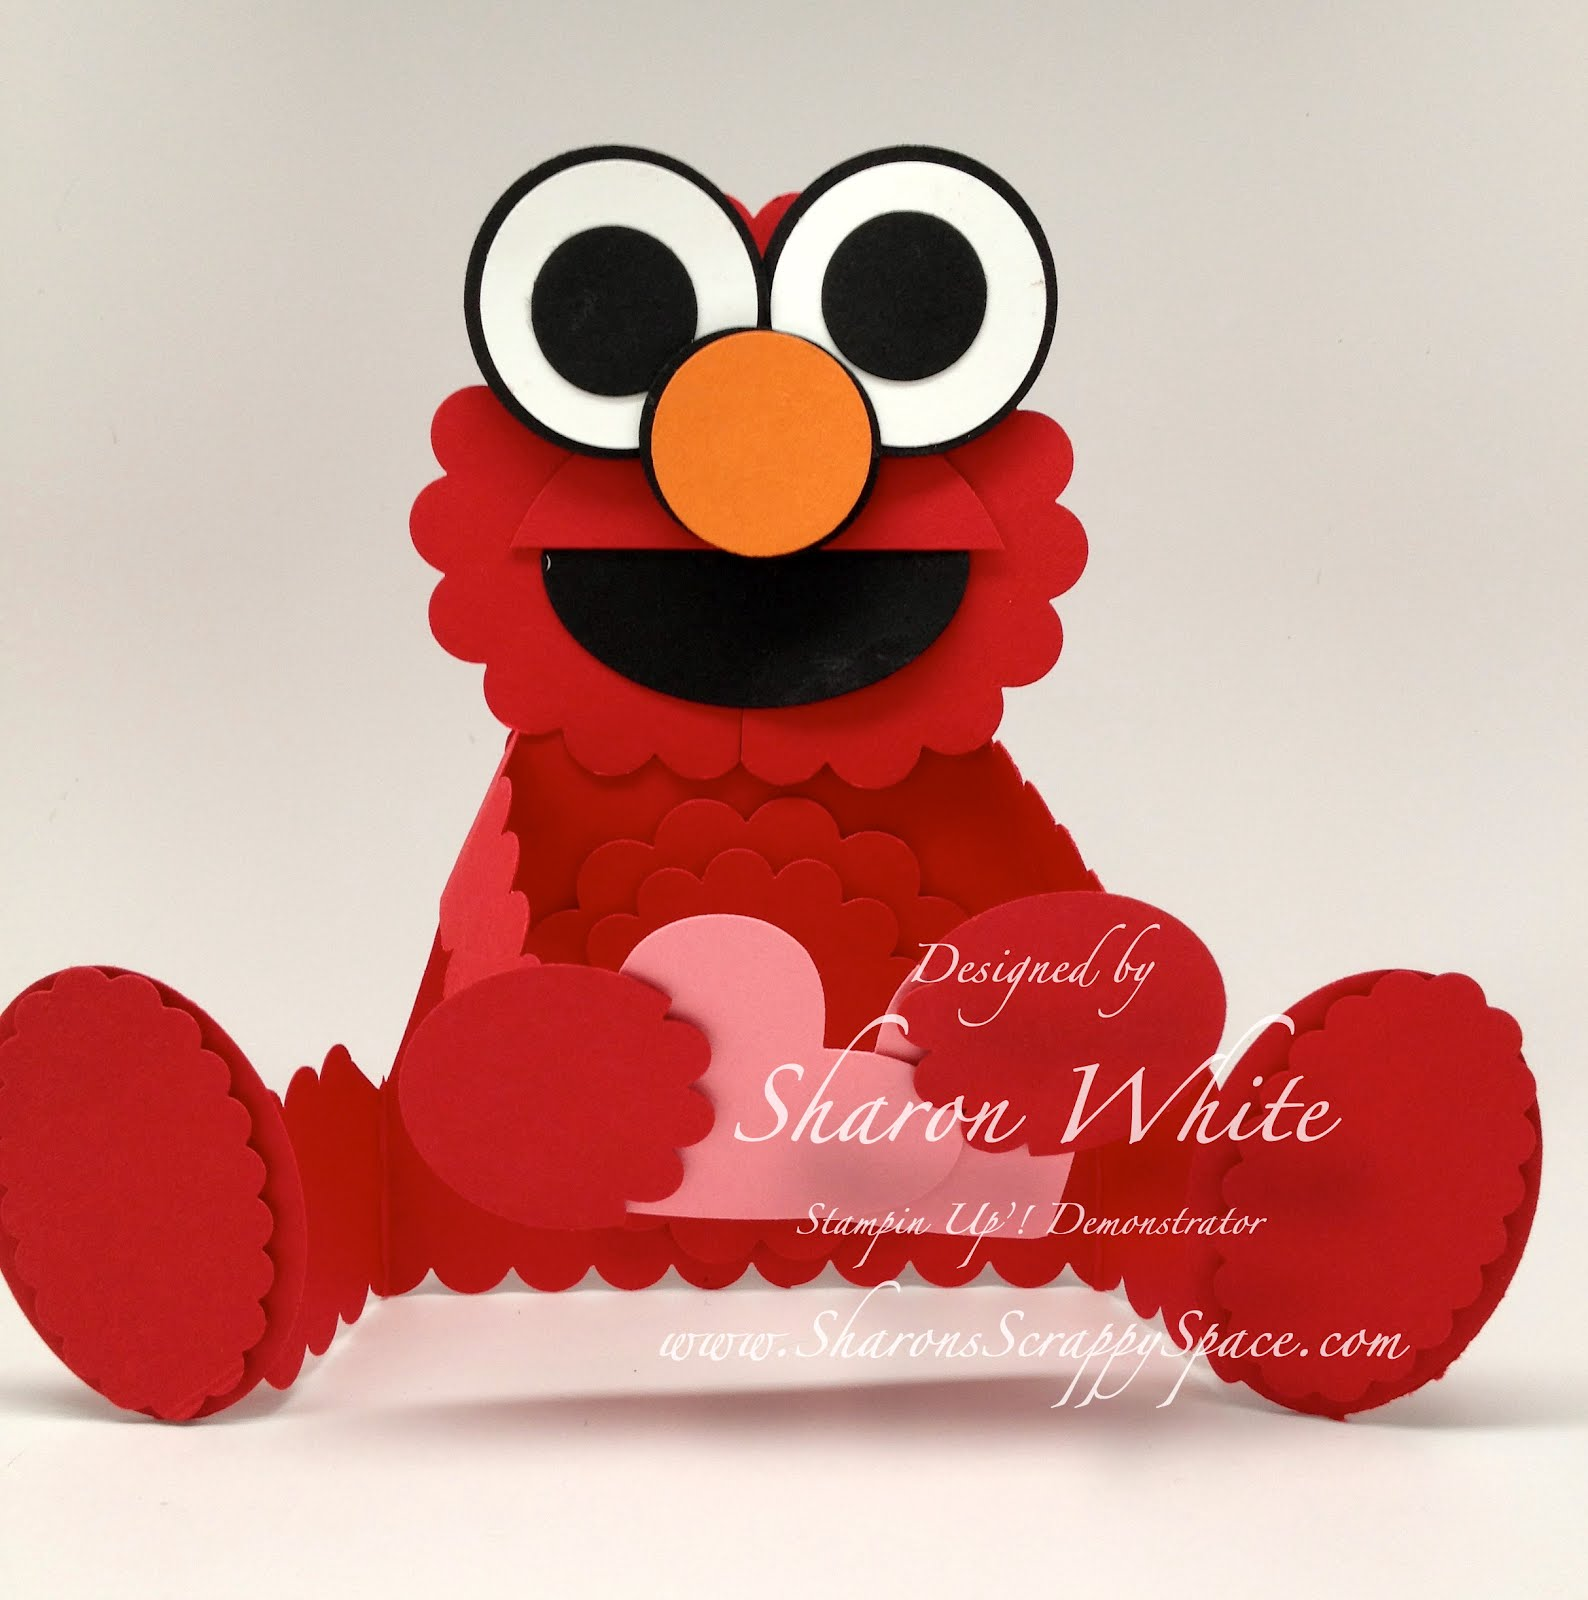 Sharon\'s Scrappy Space: Elmo Punch Art Card